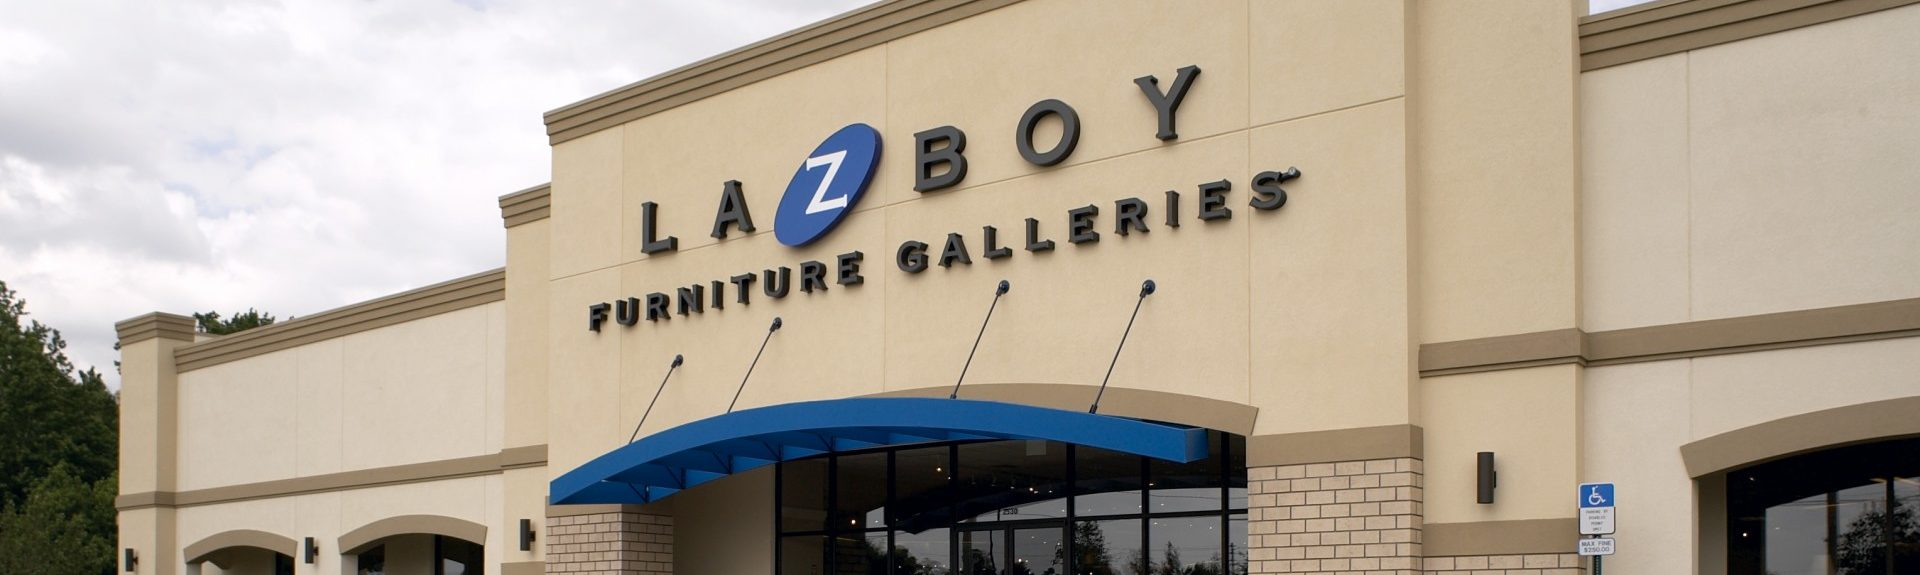 La Z Boy Furniture